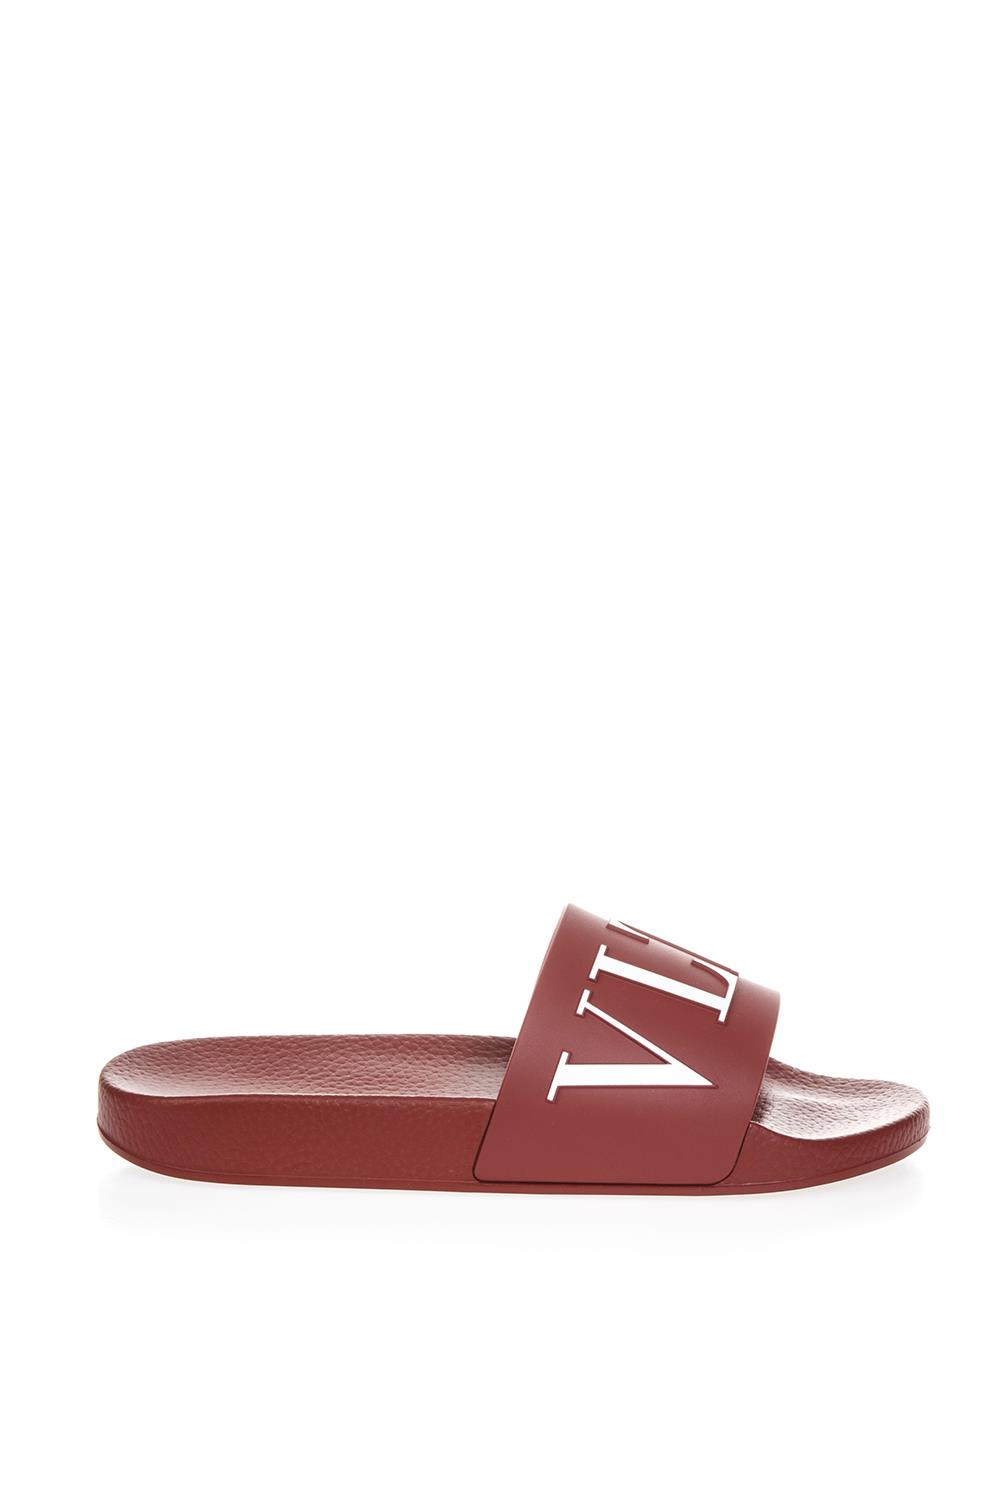 461b5ab3a485 RUBY RUBBER SLIDE SANDALS WITH VLTN FW 2018 - VALENTINO GARAVANI - Boutique  Galiano